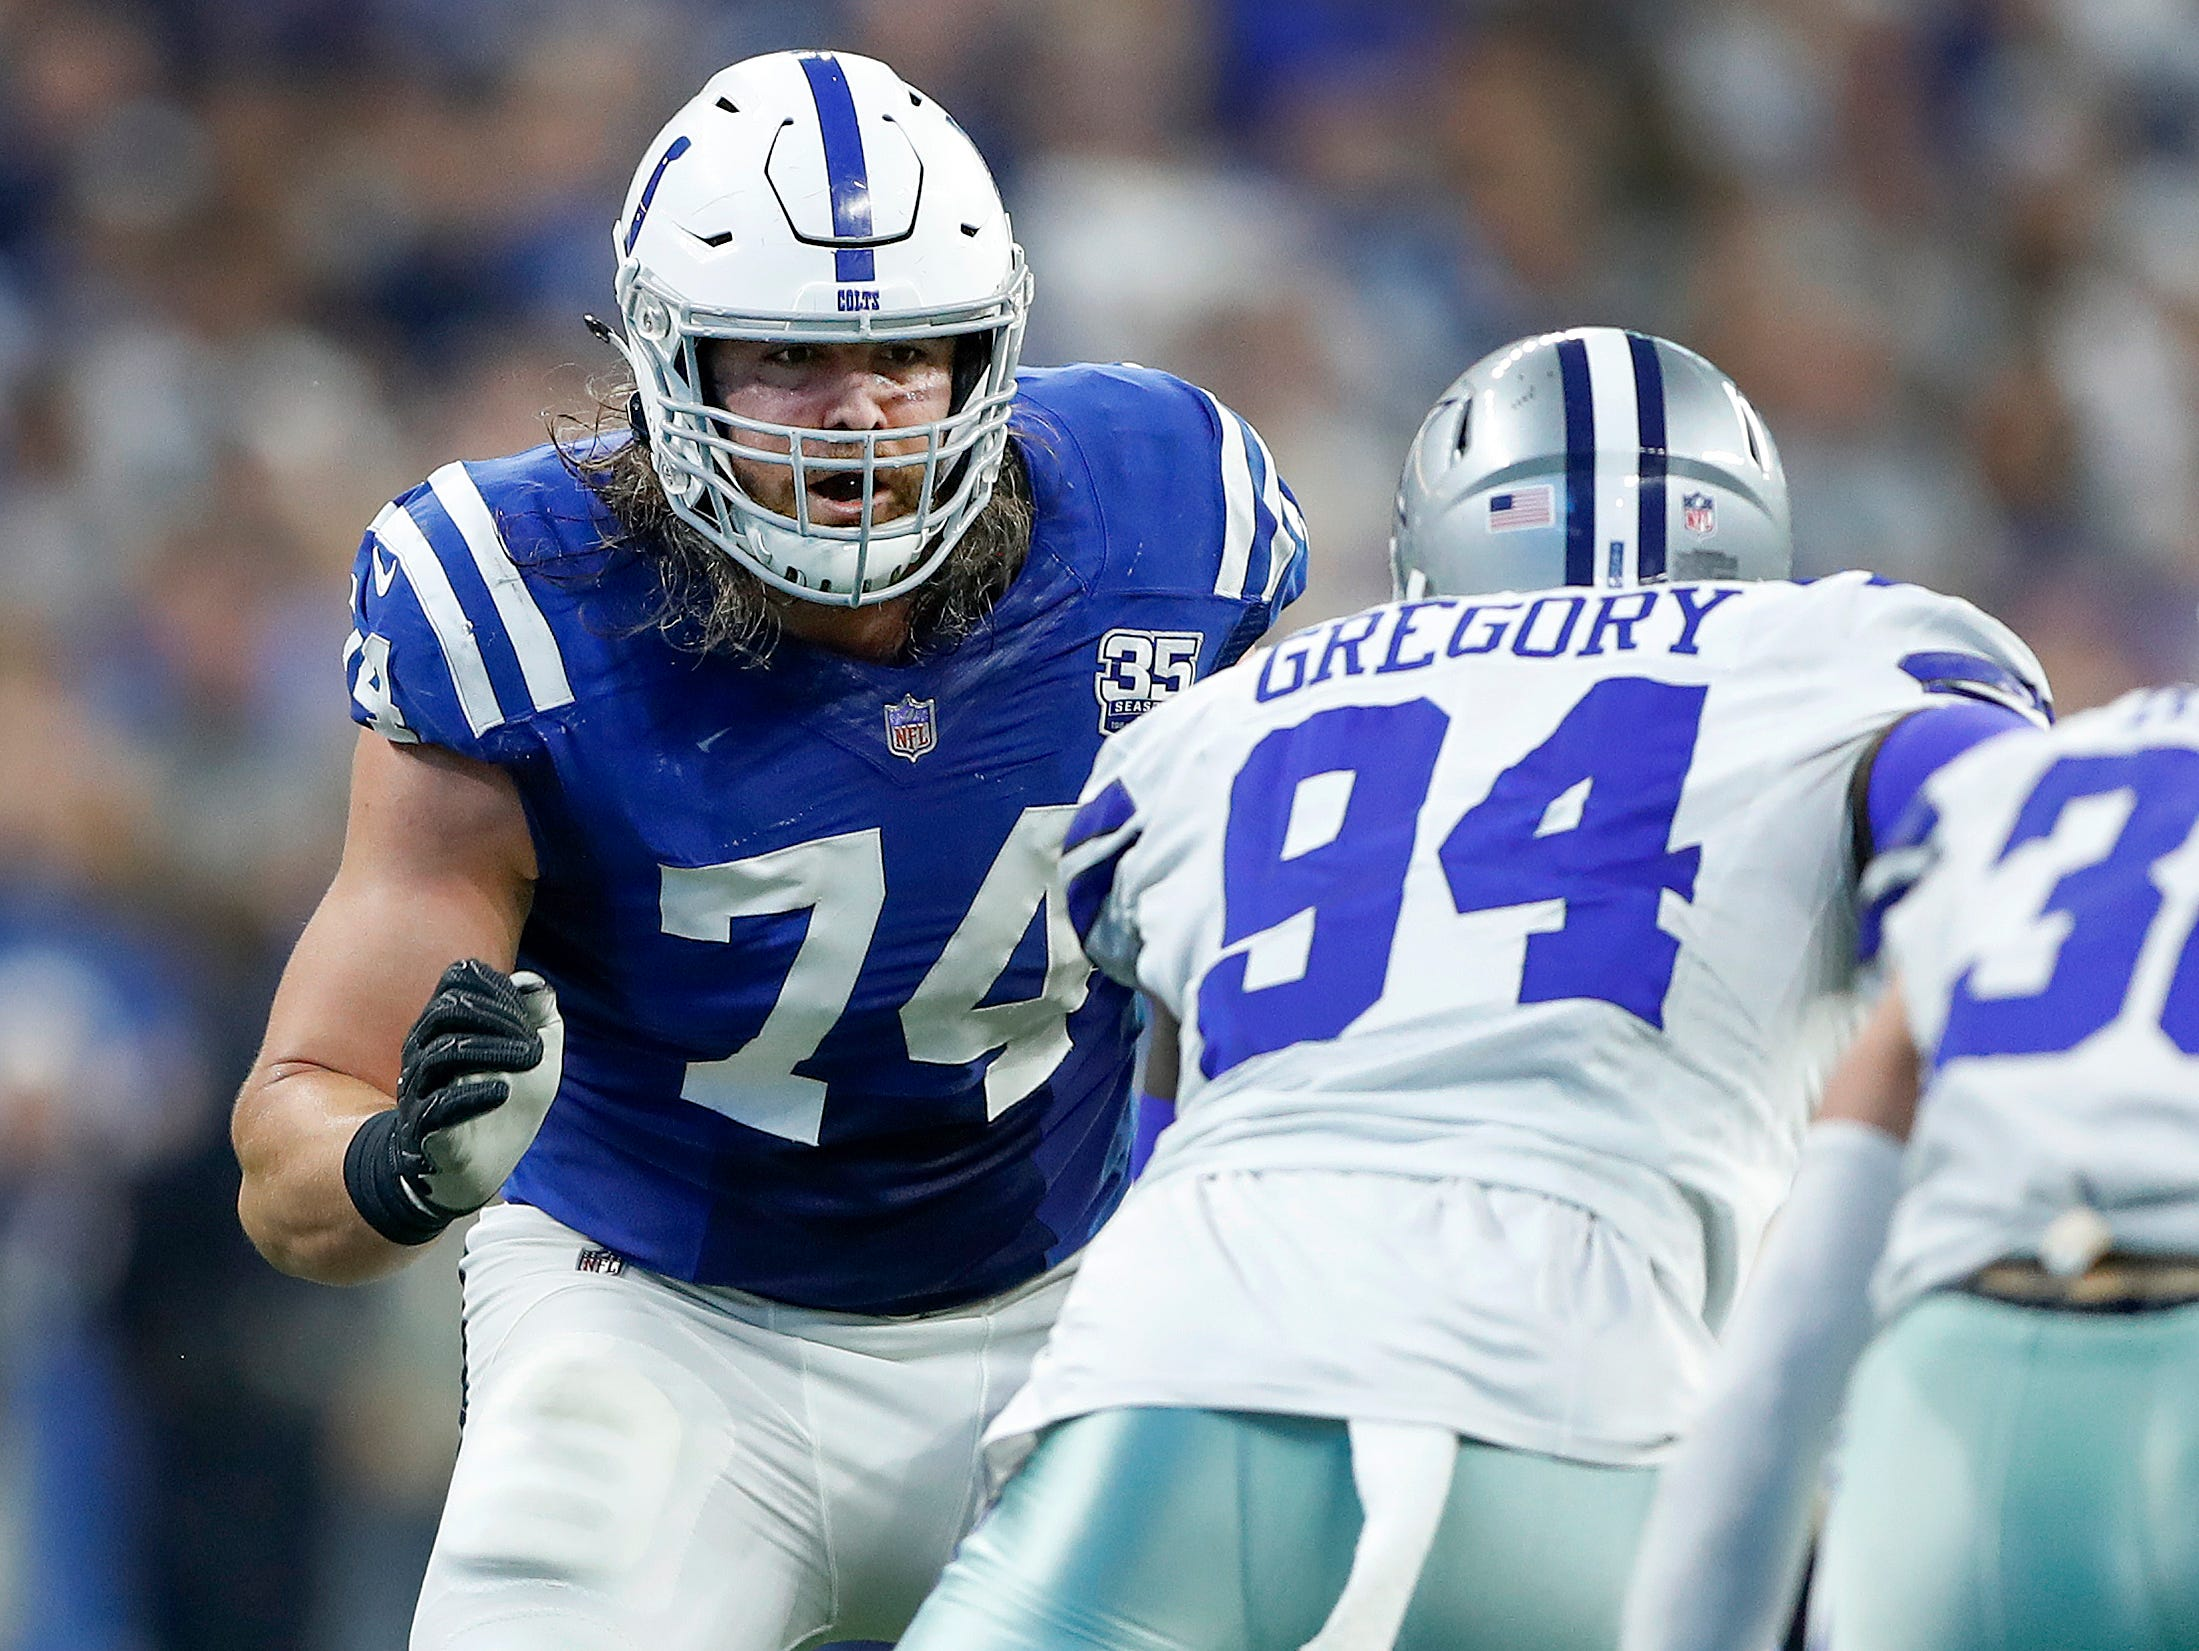 Indianapolis Colts offensive tackle Anthony Castonzo (74) prepares to block Dallas Cowboys defensive end Randy Gregory (94) in the second half of their game at Lucas Oil Stadium on Sunday, Dec. 16, 2018. The Colts shut-out the Cowboys 23-0.